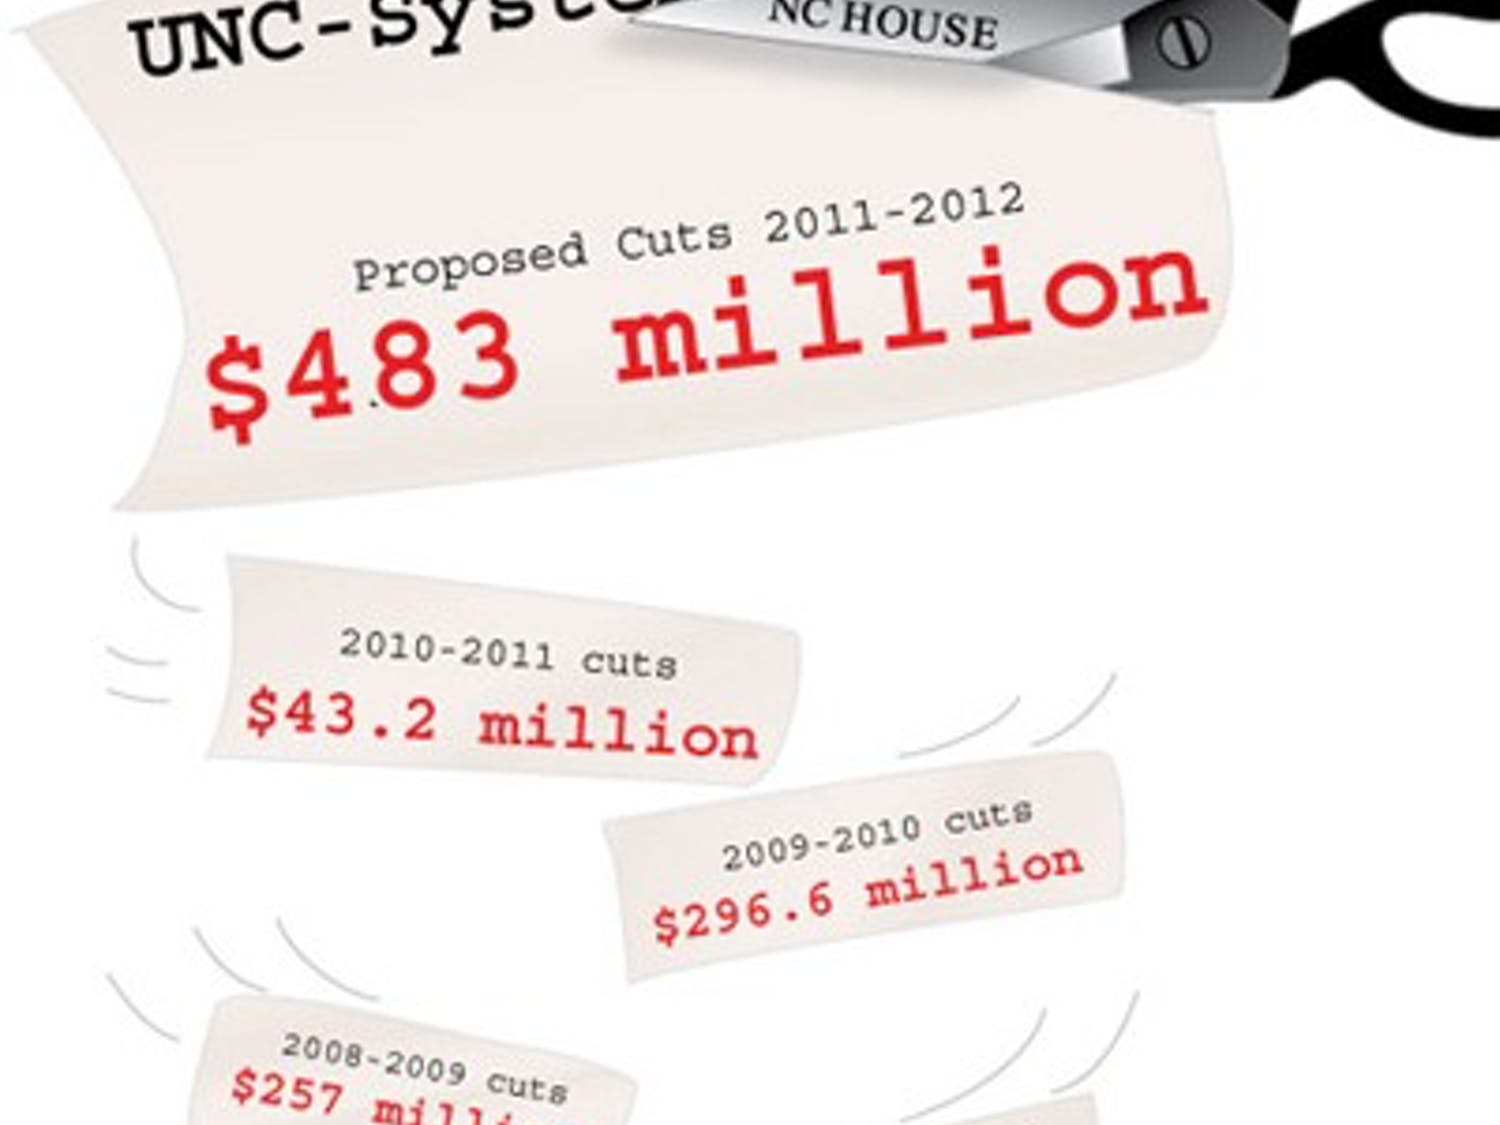 The N.C. House appropriations subcommittee on education released a budget proposal Tuesday, reducing the University system's budget for the upcoming fiscal year by $483 million. The system has lost more than $600  million in state funding in the last four years. Last year's $128.4 million cut was offset by a supplemental tuition increase, making the final reduction $43.2 million. Legislators will vote on the final cut for the system this summer.